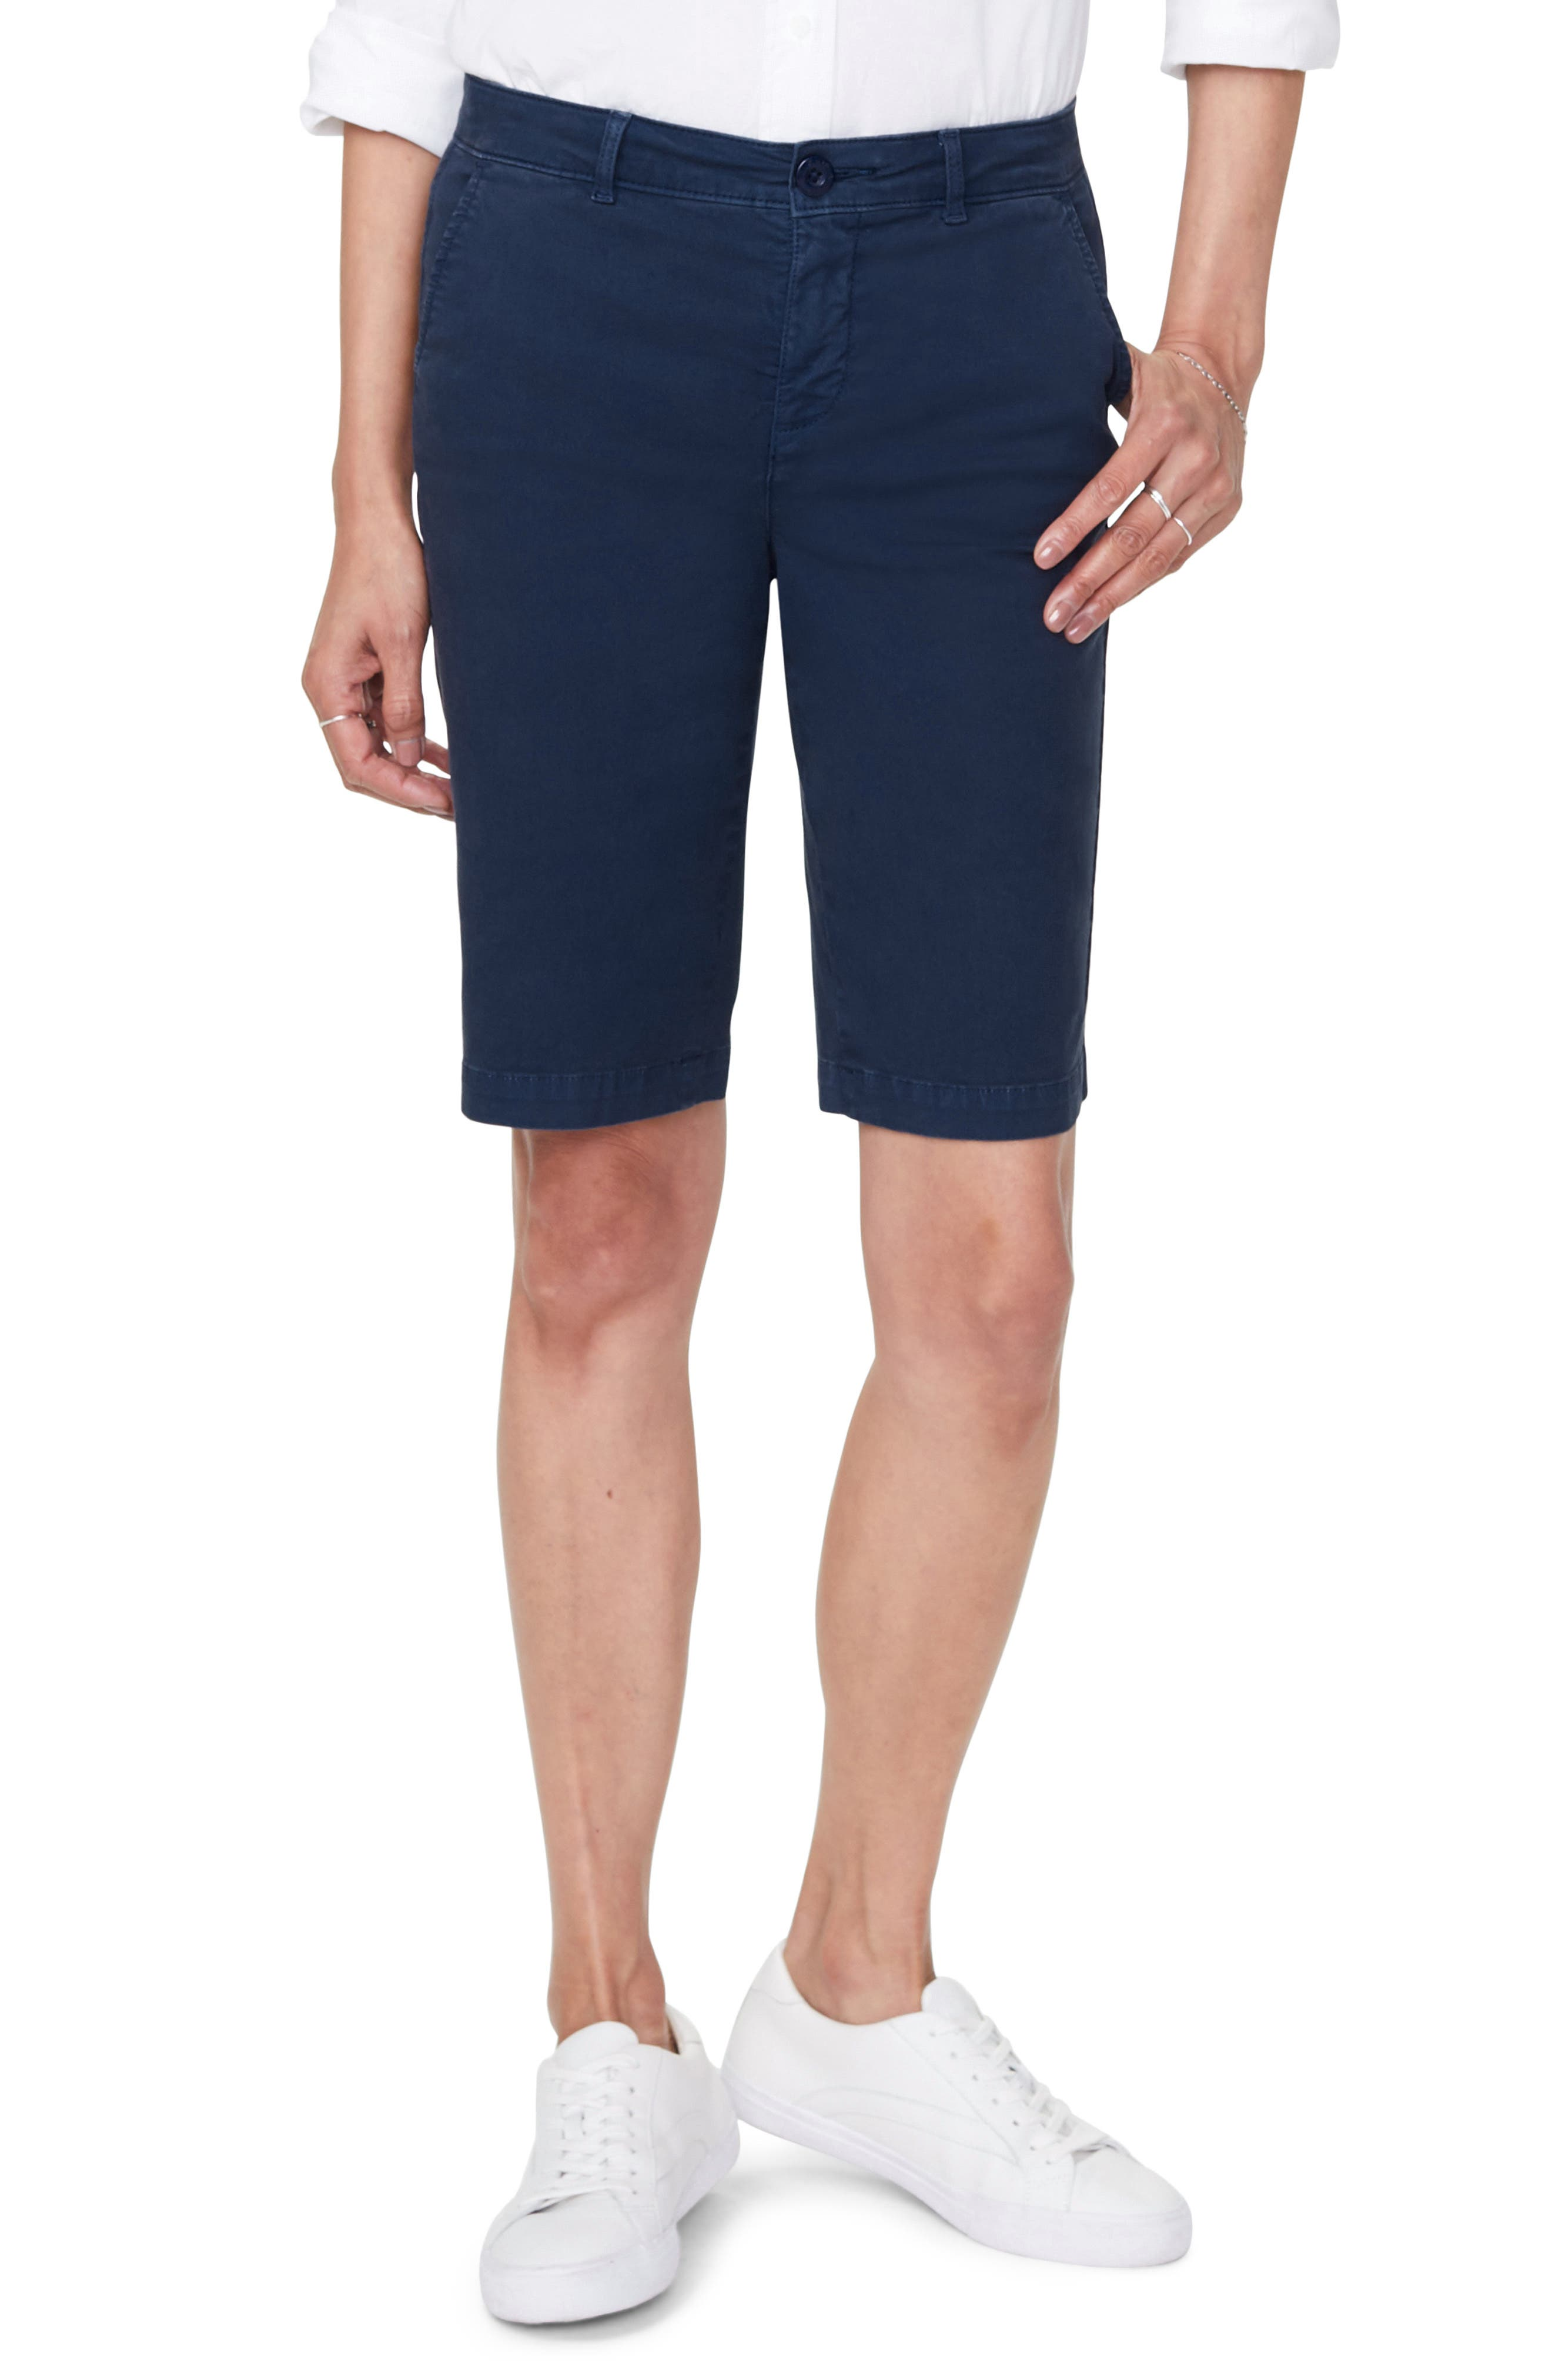 Petite Women's Nydj Stretch Twill Bermuda Shorts,  6P - Blue